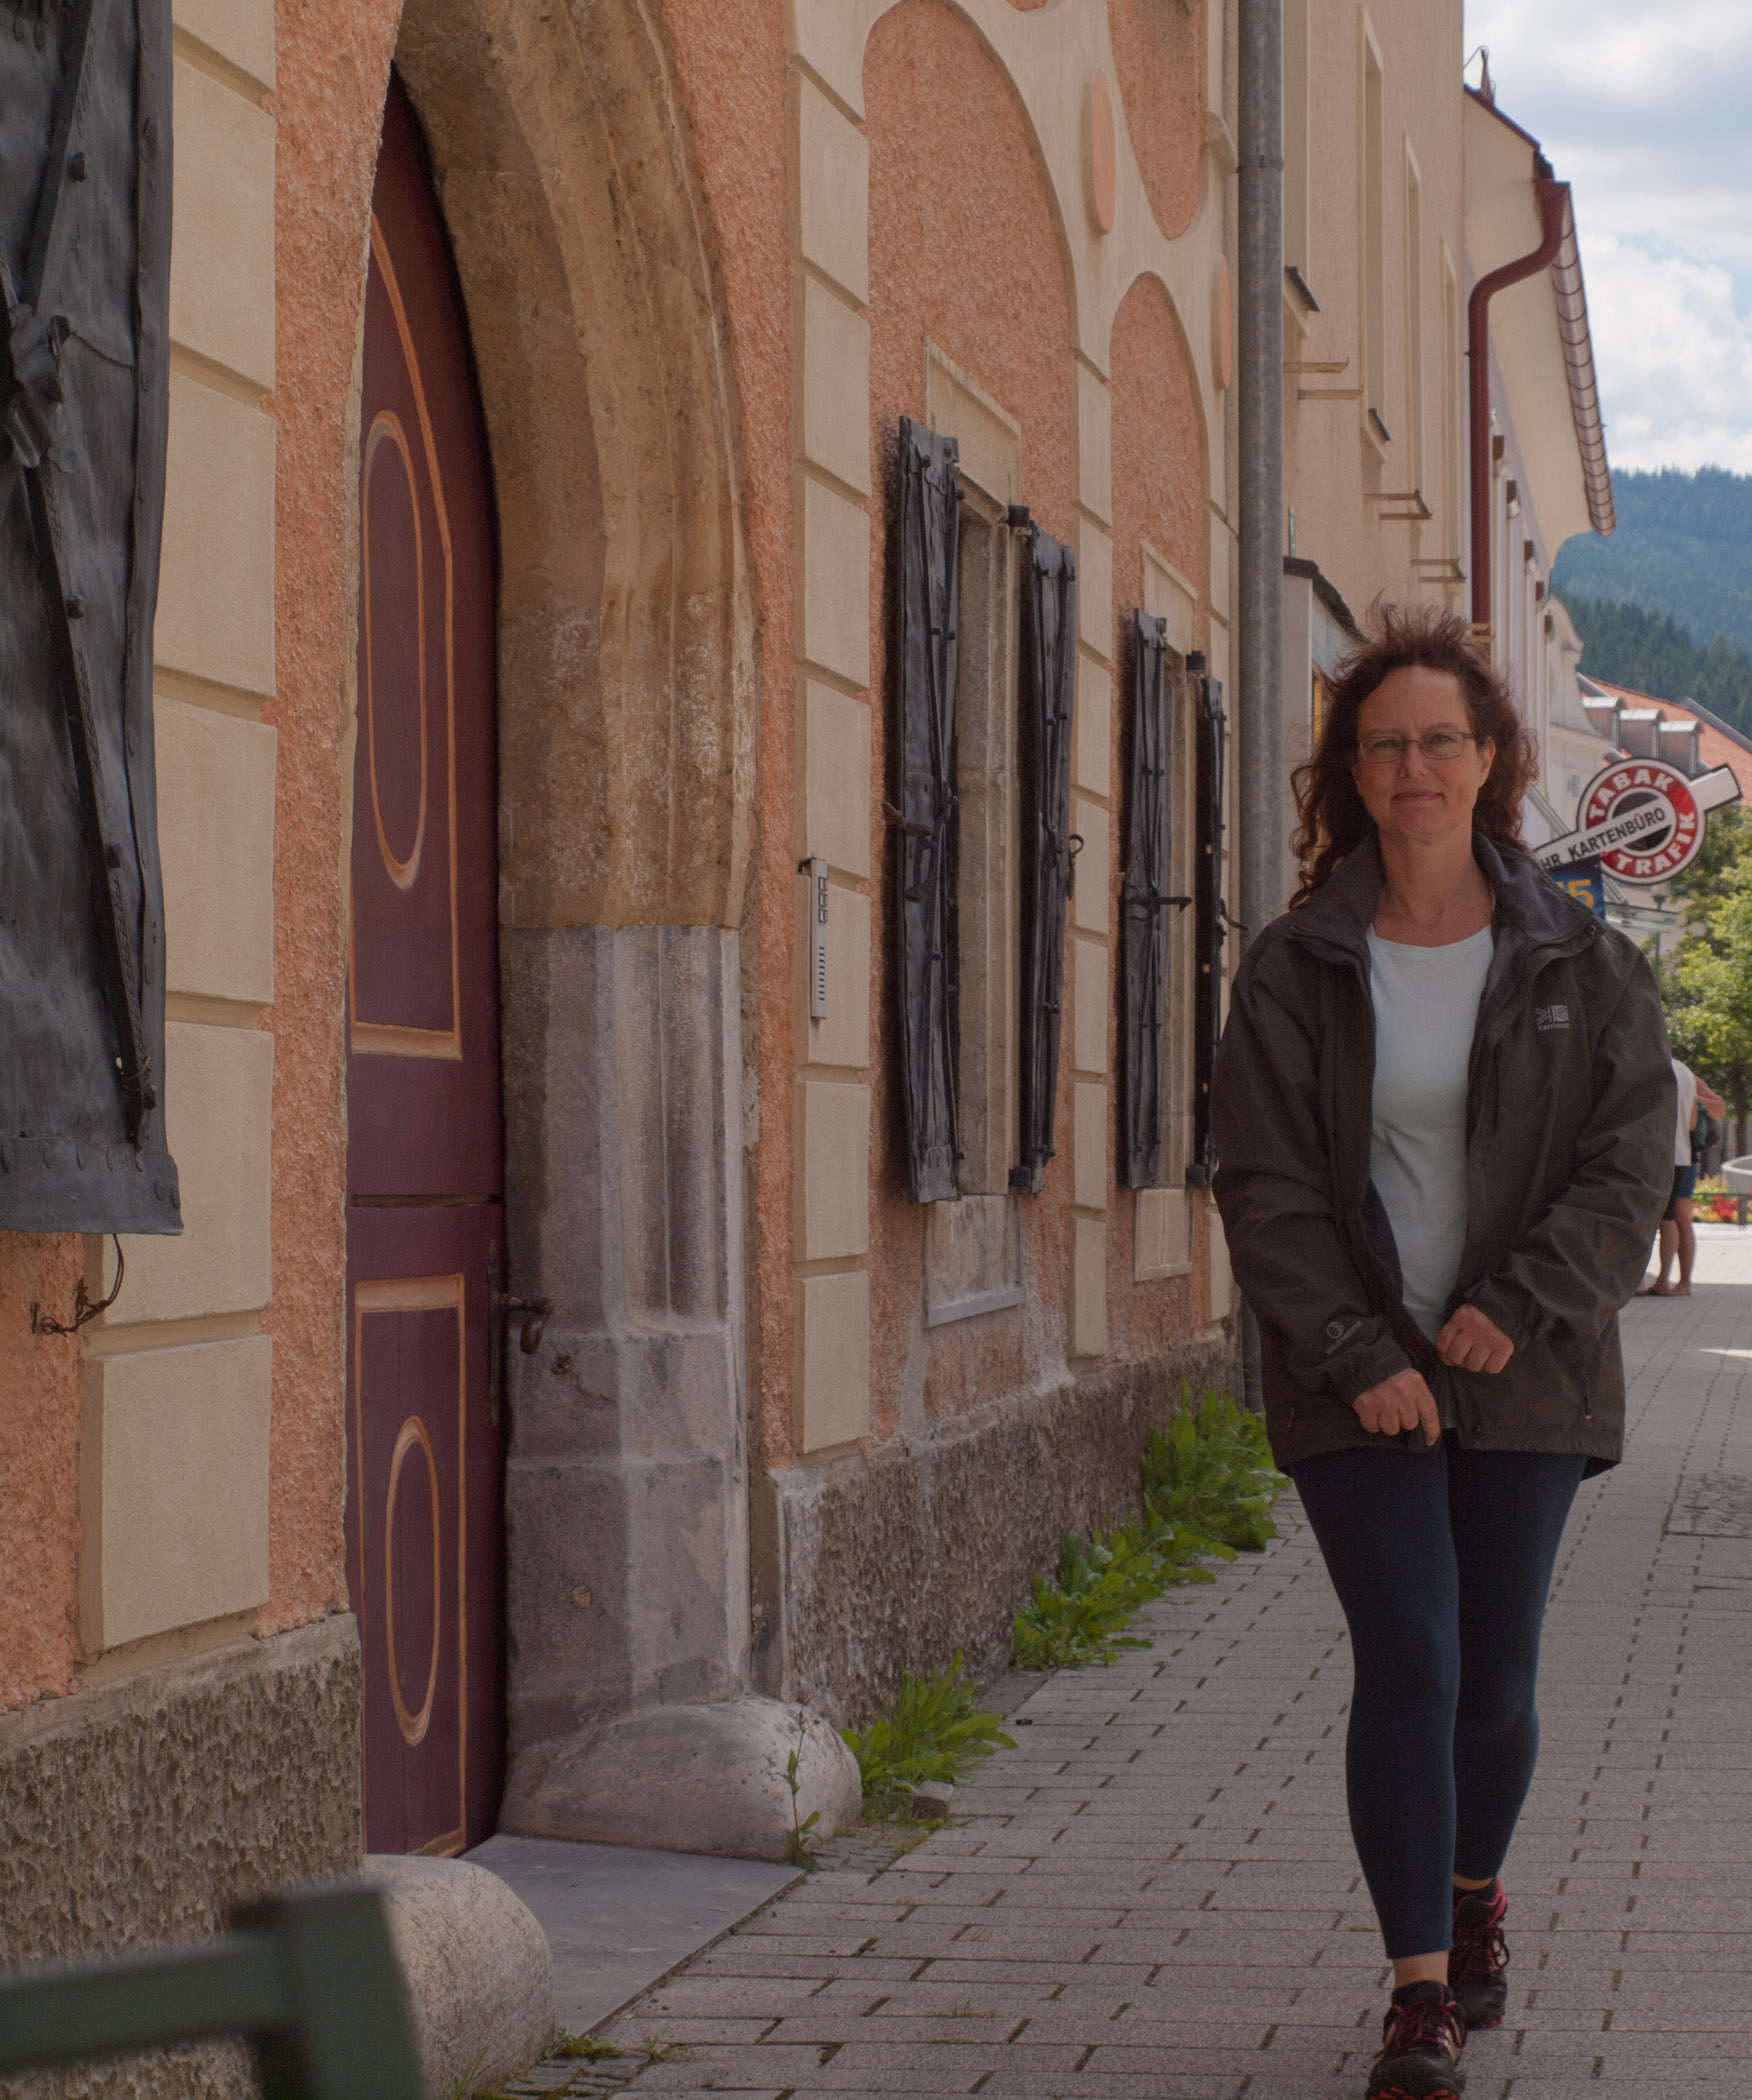 Walk through quaint Styrian Town